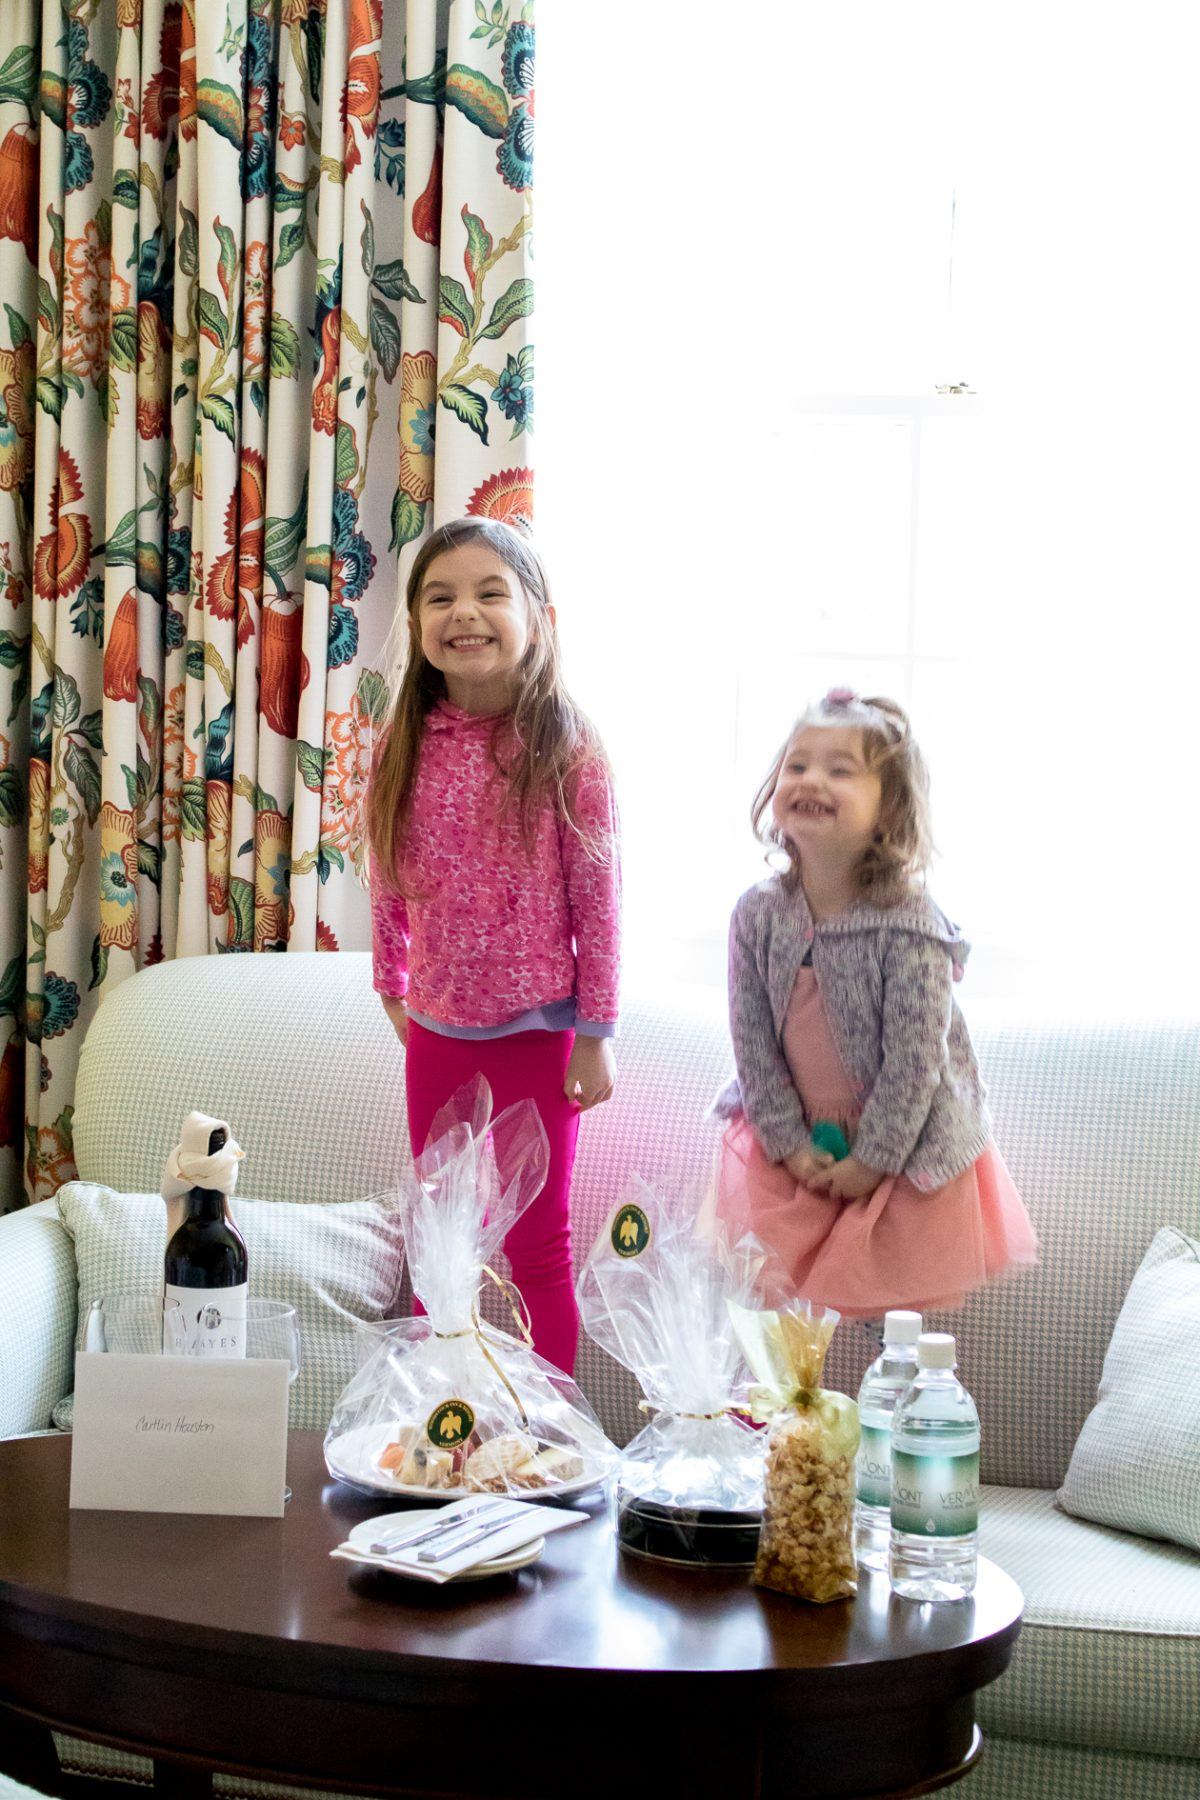 Smiling little girls wearing pink standing around a table with gifts Woodstock Inn and Resort in Woodstock Vermont